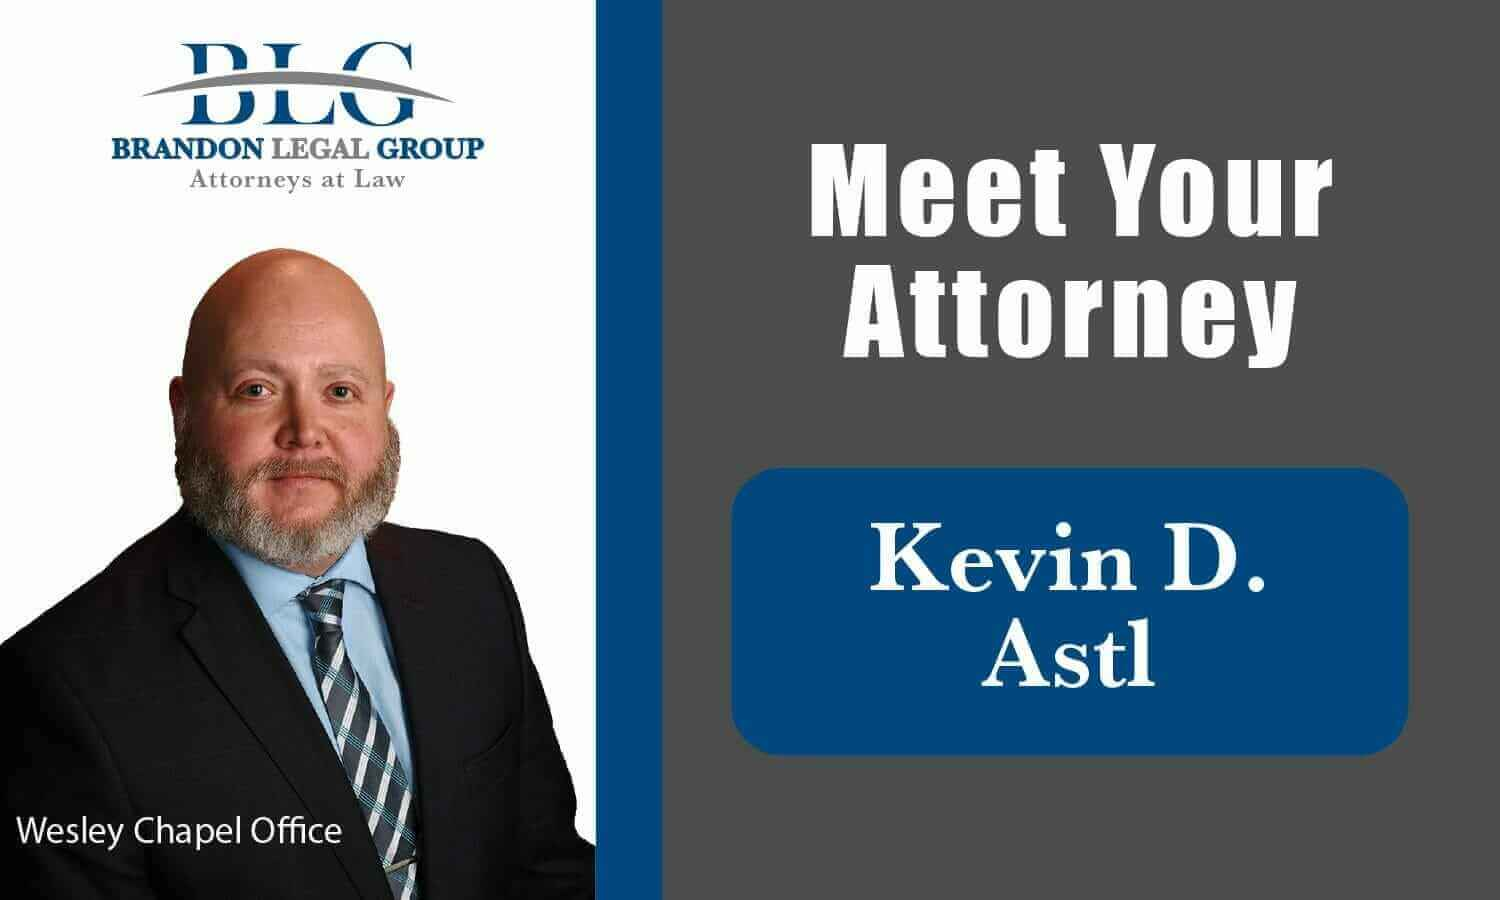 Meet Your Attorney Kevin D. Astl